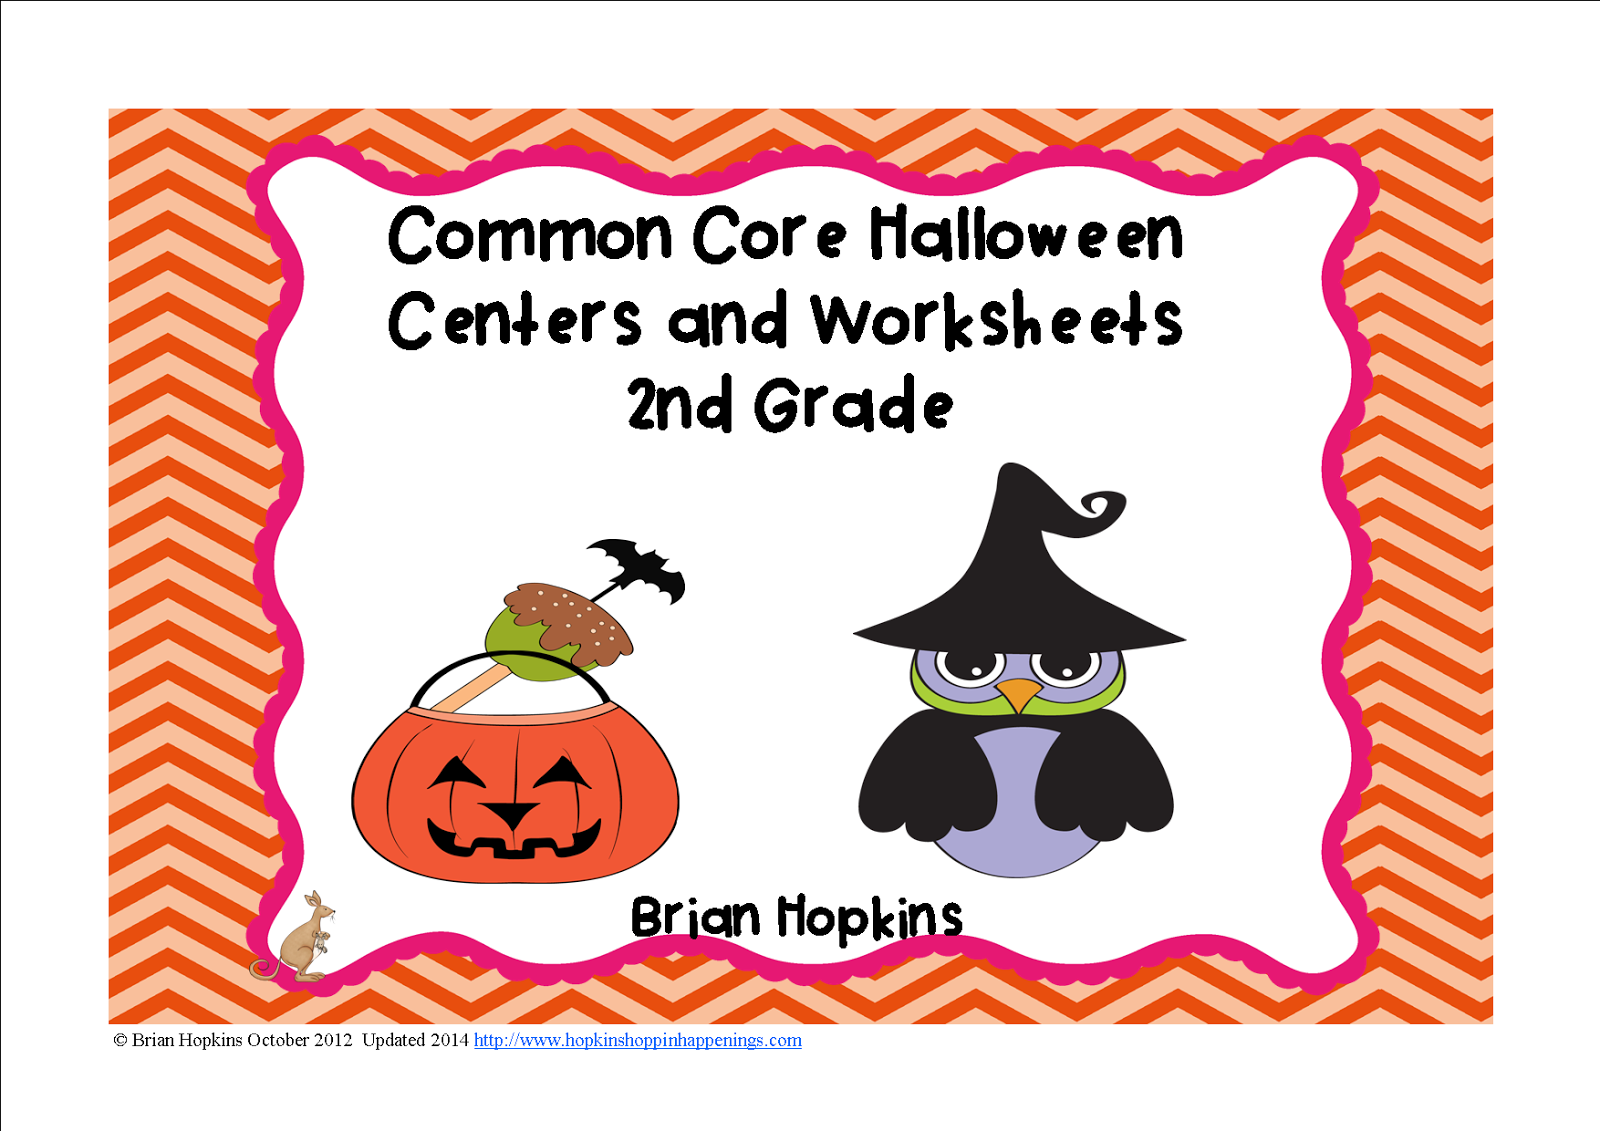 http://www.teacherspayteachers.com/Product/Halloween-Themed-2nd-Grade-Reading-and-Math-Centers-and-Worksheets-354254